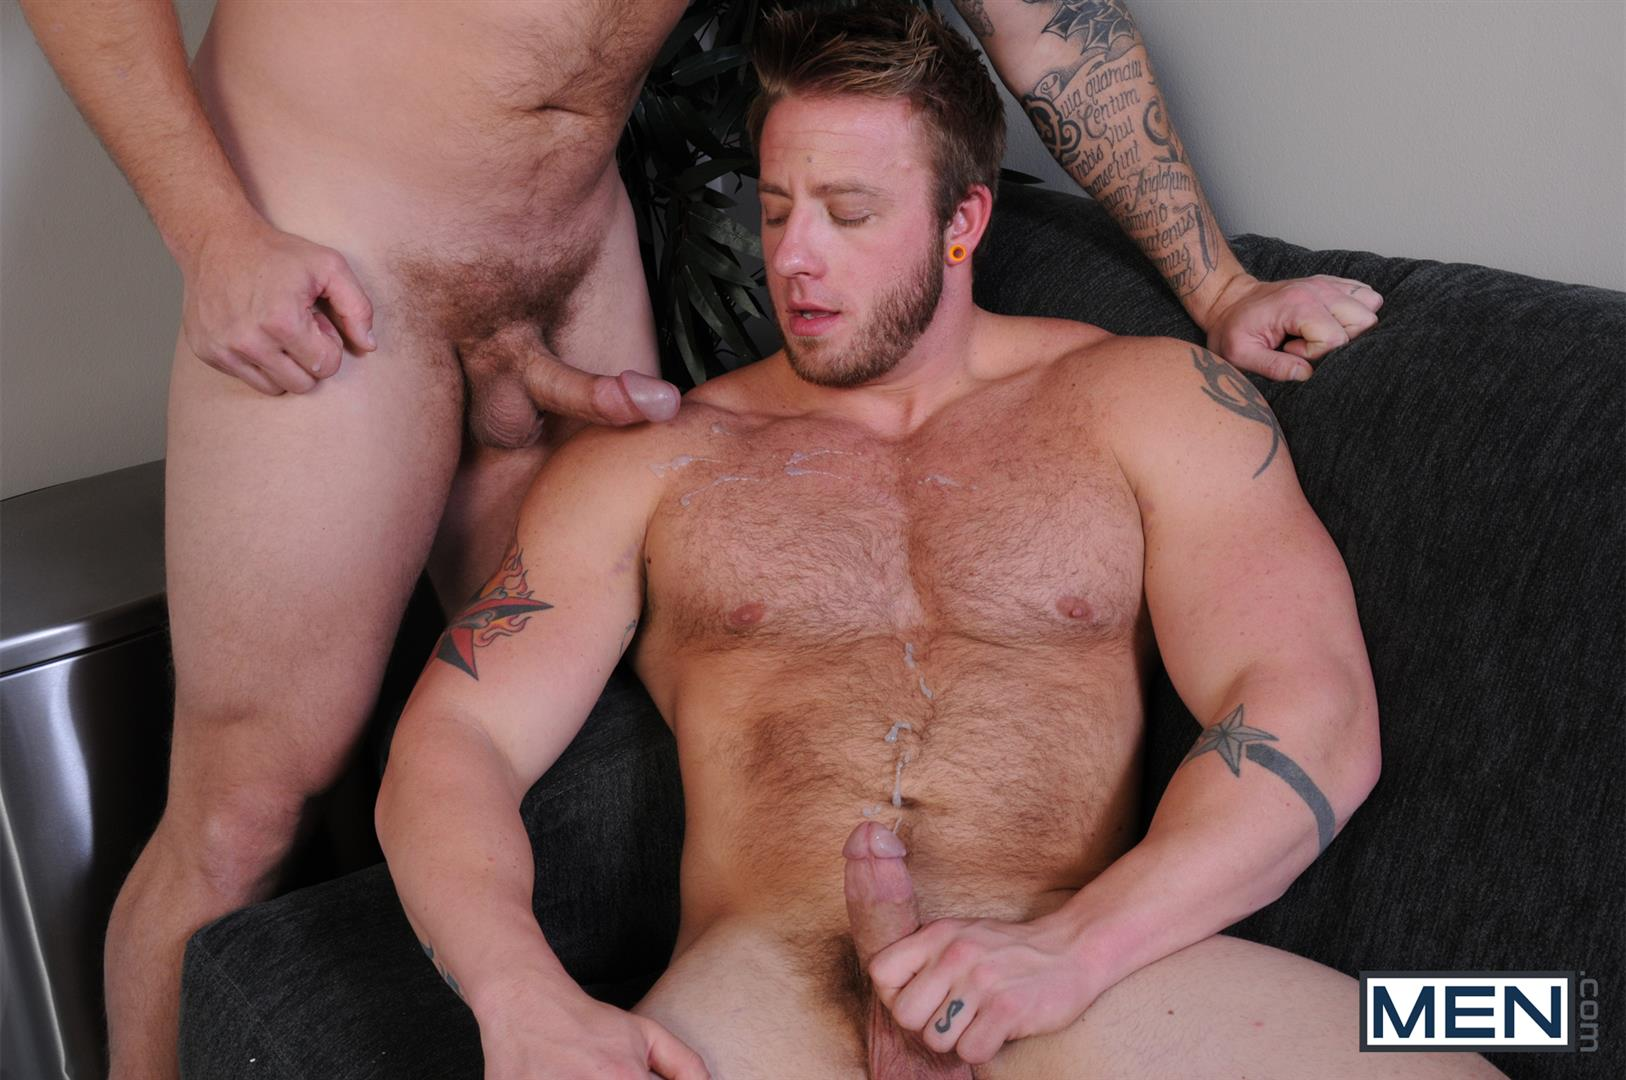 Men Scrum Colby Jansen and Aaron Bruiser Hairy Muscle Guys Fucking With Big Cocks Gay Porn 15 Hairy Muscle Rugby Coach Fucking A Hairy Rugby Player